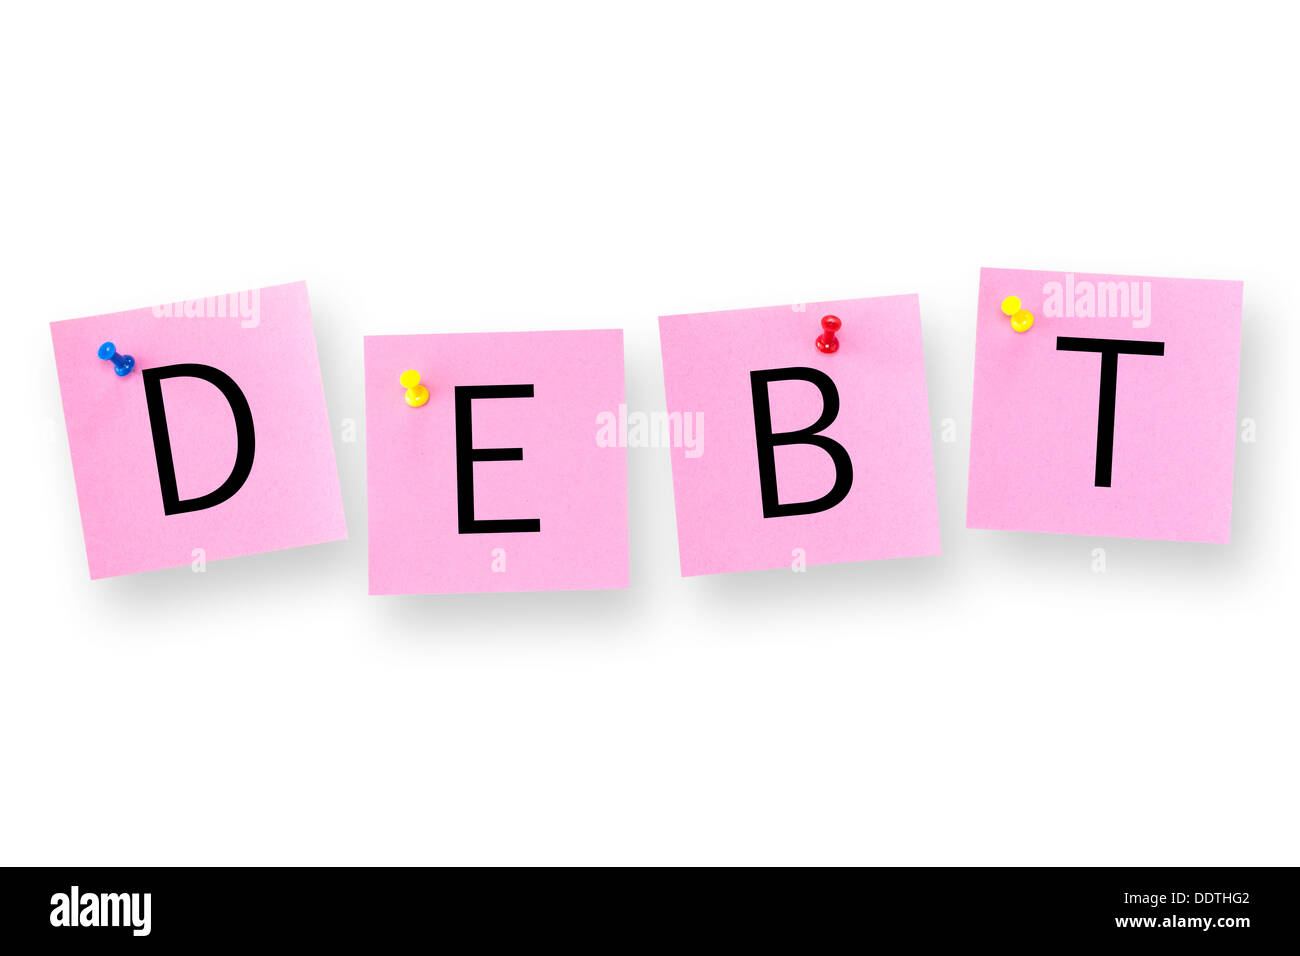 Debt spelled out on white background. - Stock Image